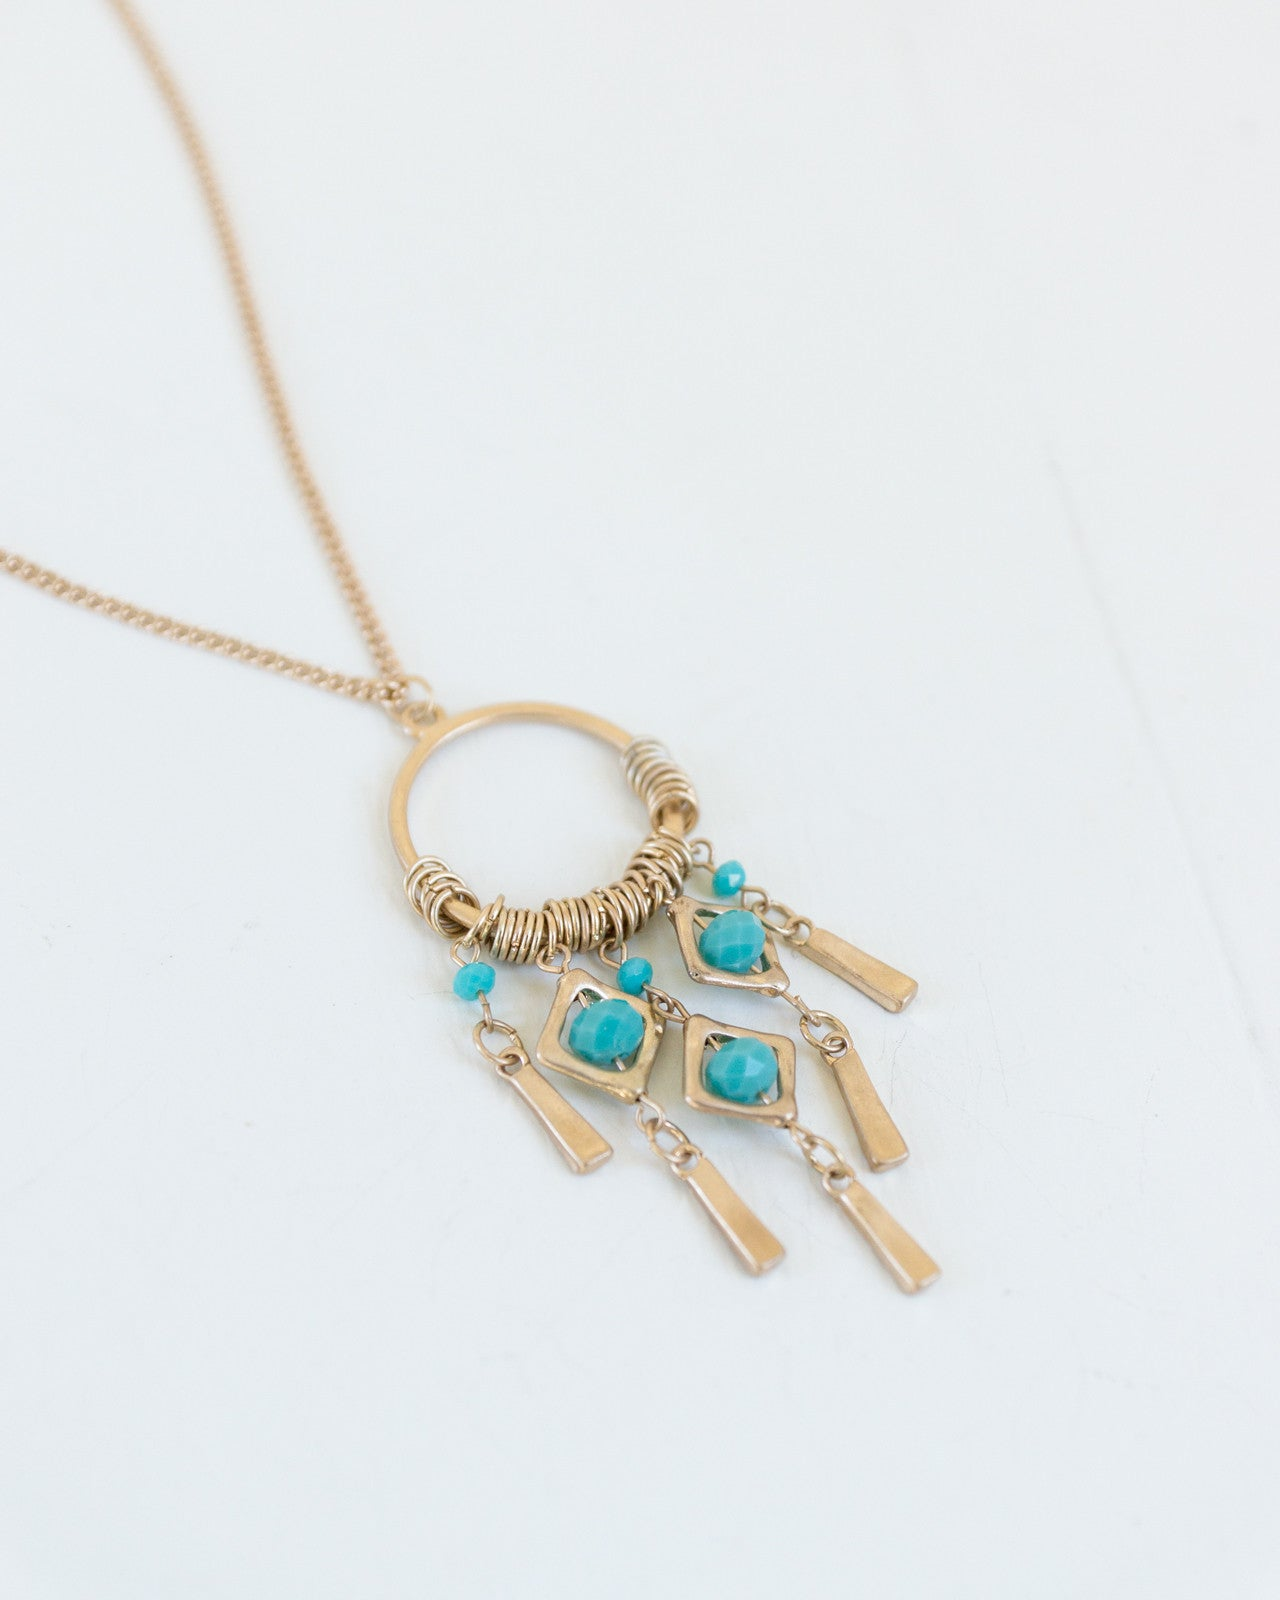 Catching Dreams Turquoise Pendant Necklace | Rose & Remington